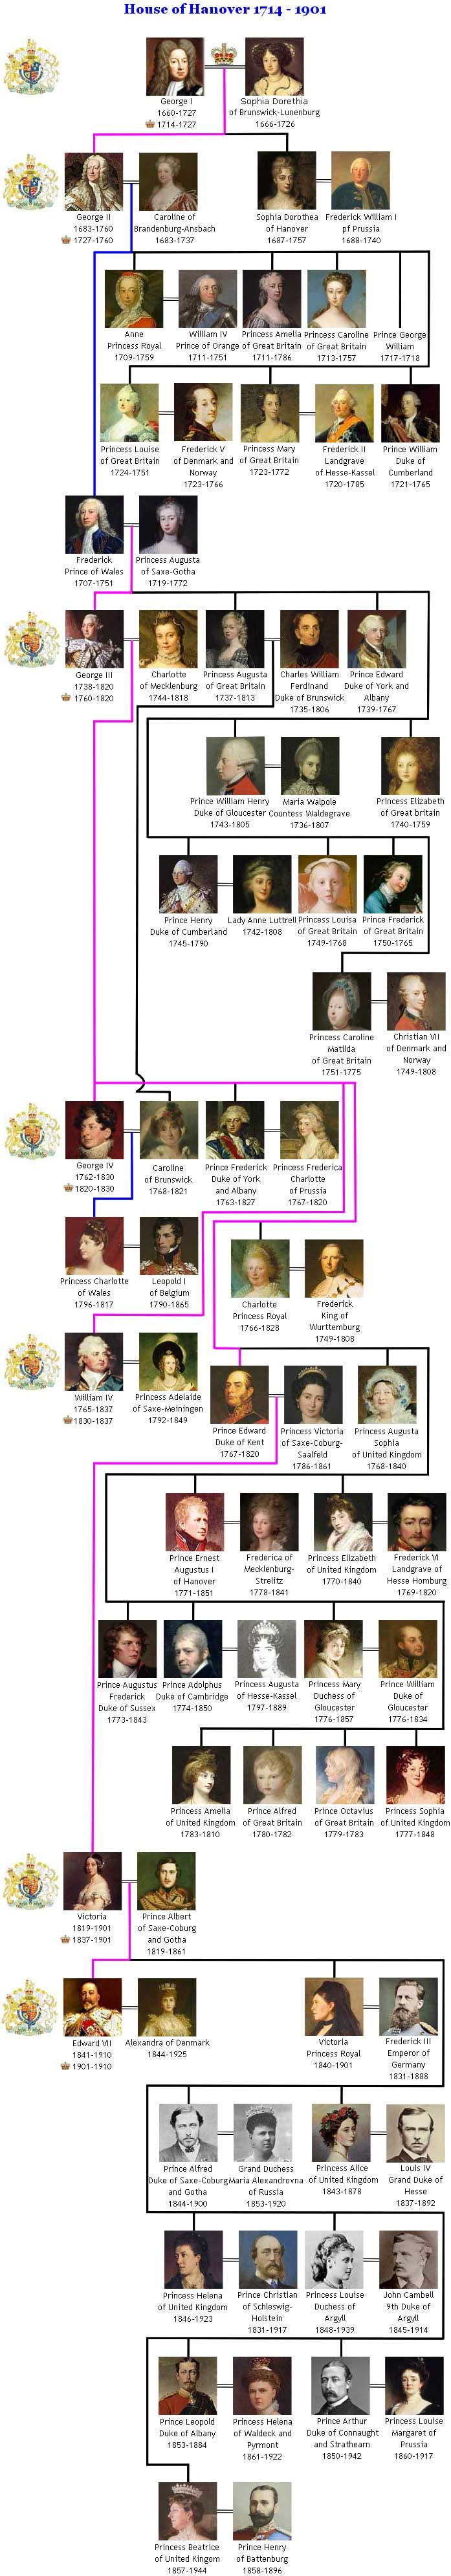 [Great Britain] The Royal House of Hanover was the first dynasty in Great Britain. Search the family tree and read detailed descriptions of it's royal family members